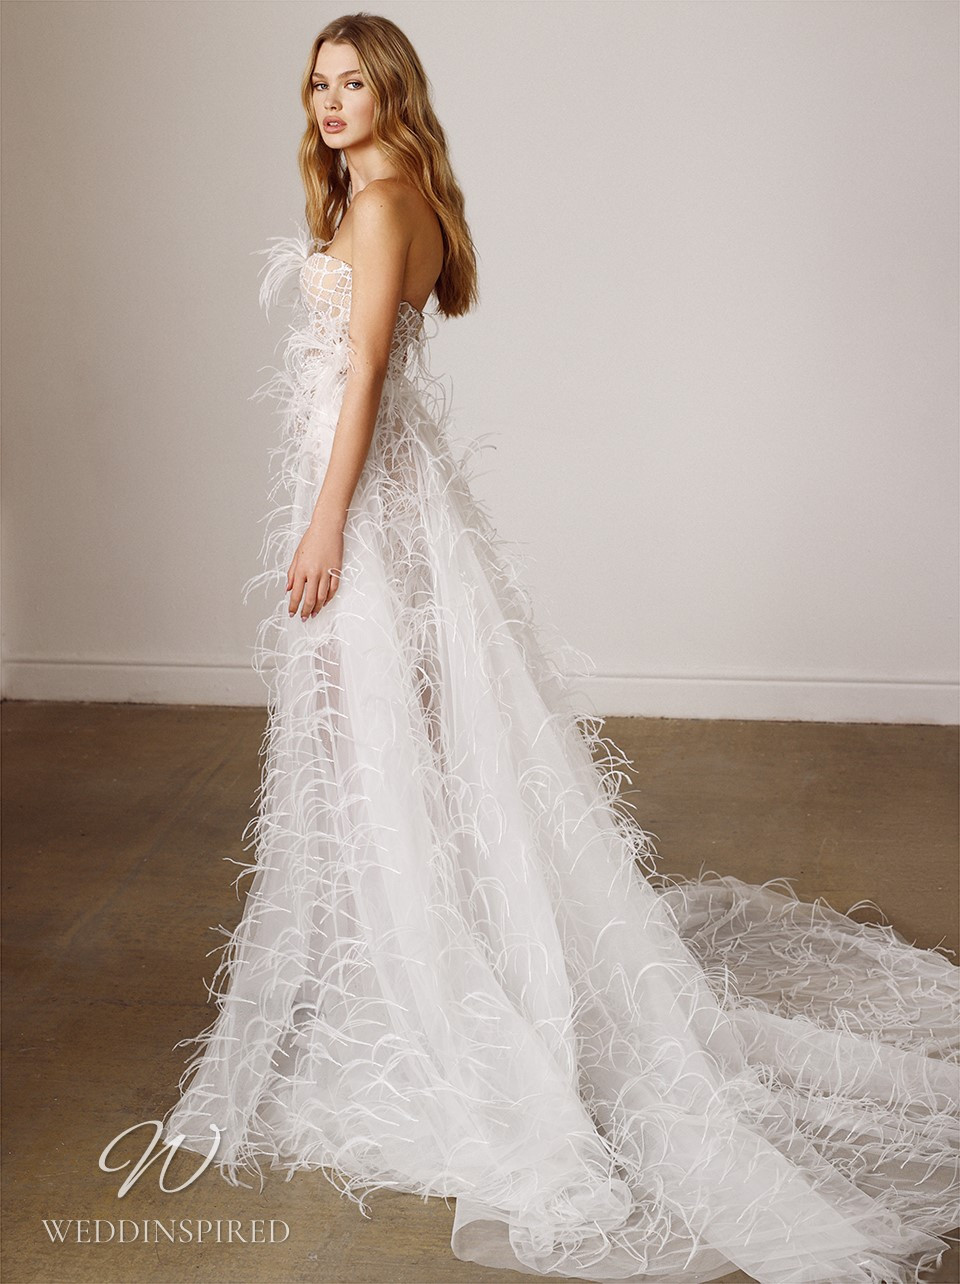 A Galia Lahav 2022 strapless nude short wedding dress with feathers, fringe and a detachable skirt